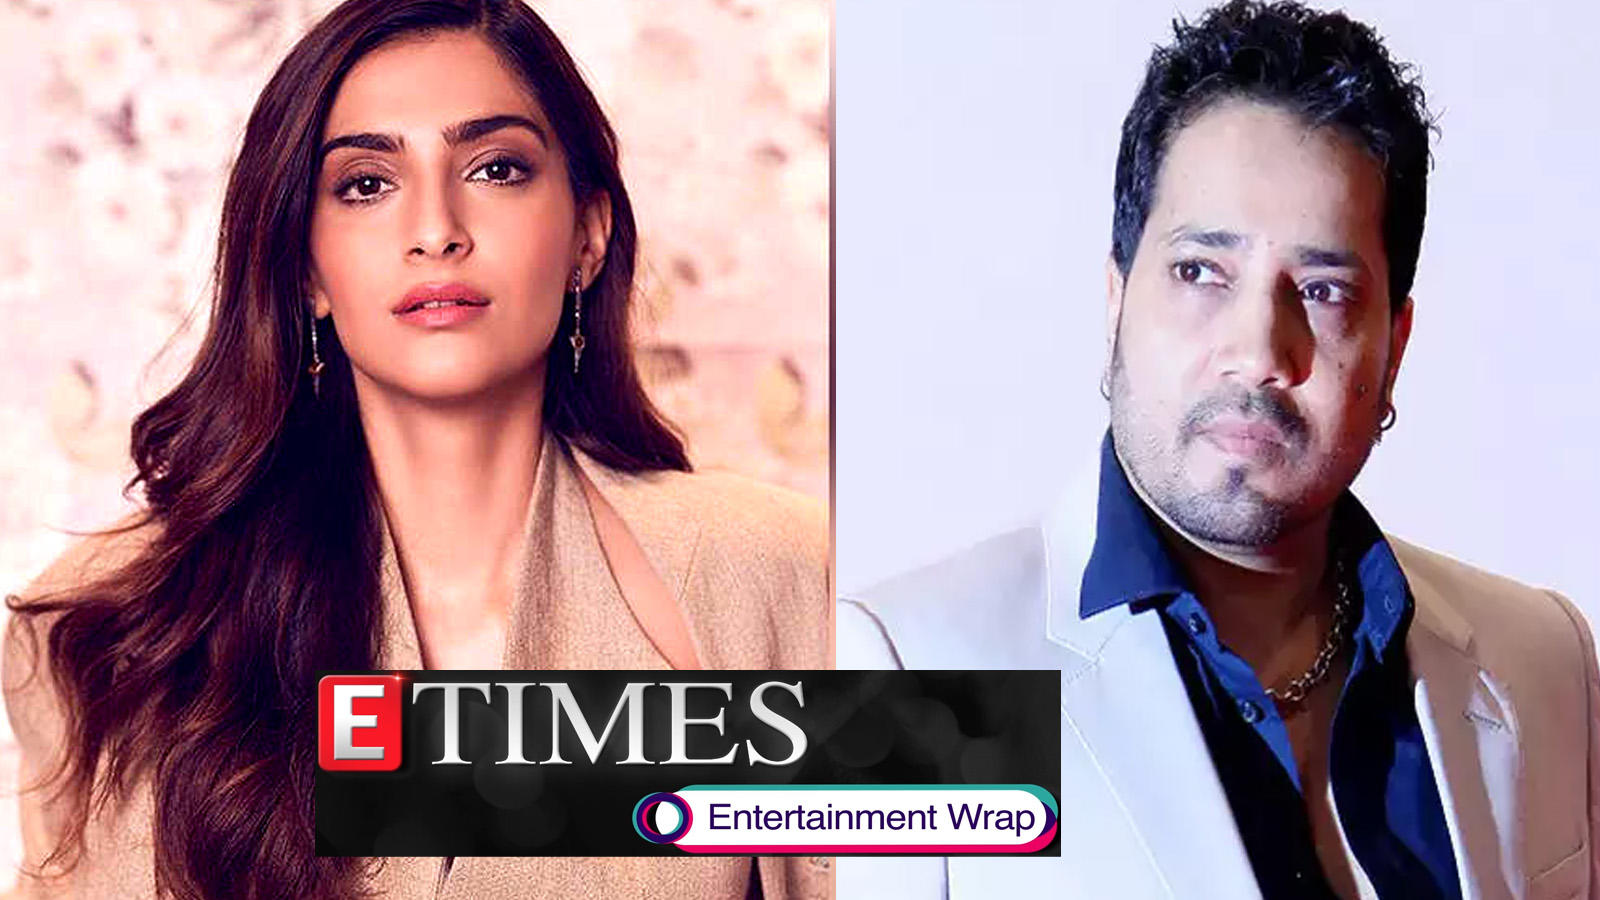 sonam-kapoor-trolled-for-her-comments-on-kashmir-mika-singh-wants-to-apologise-to-the-nation-post-facing-ban-from-bollywood-and-more